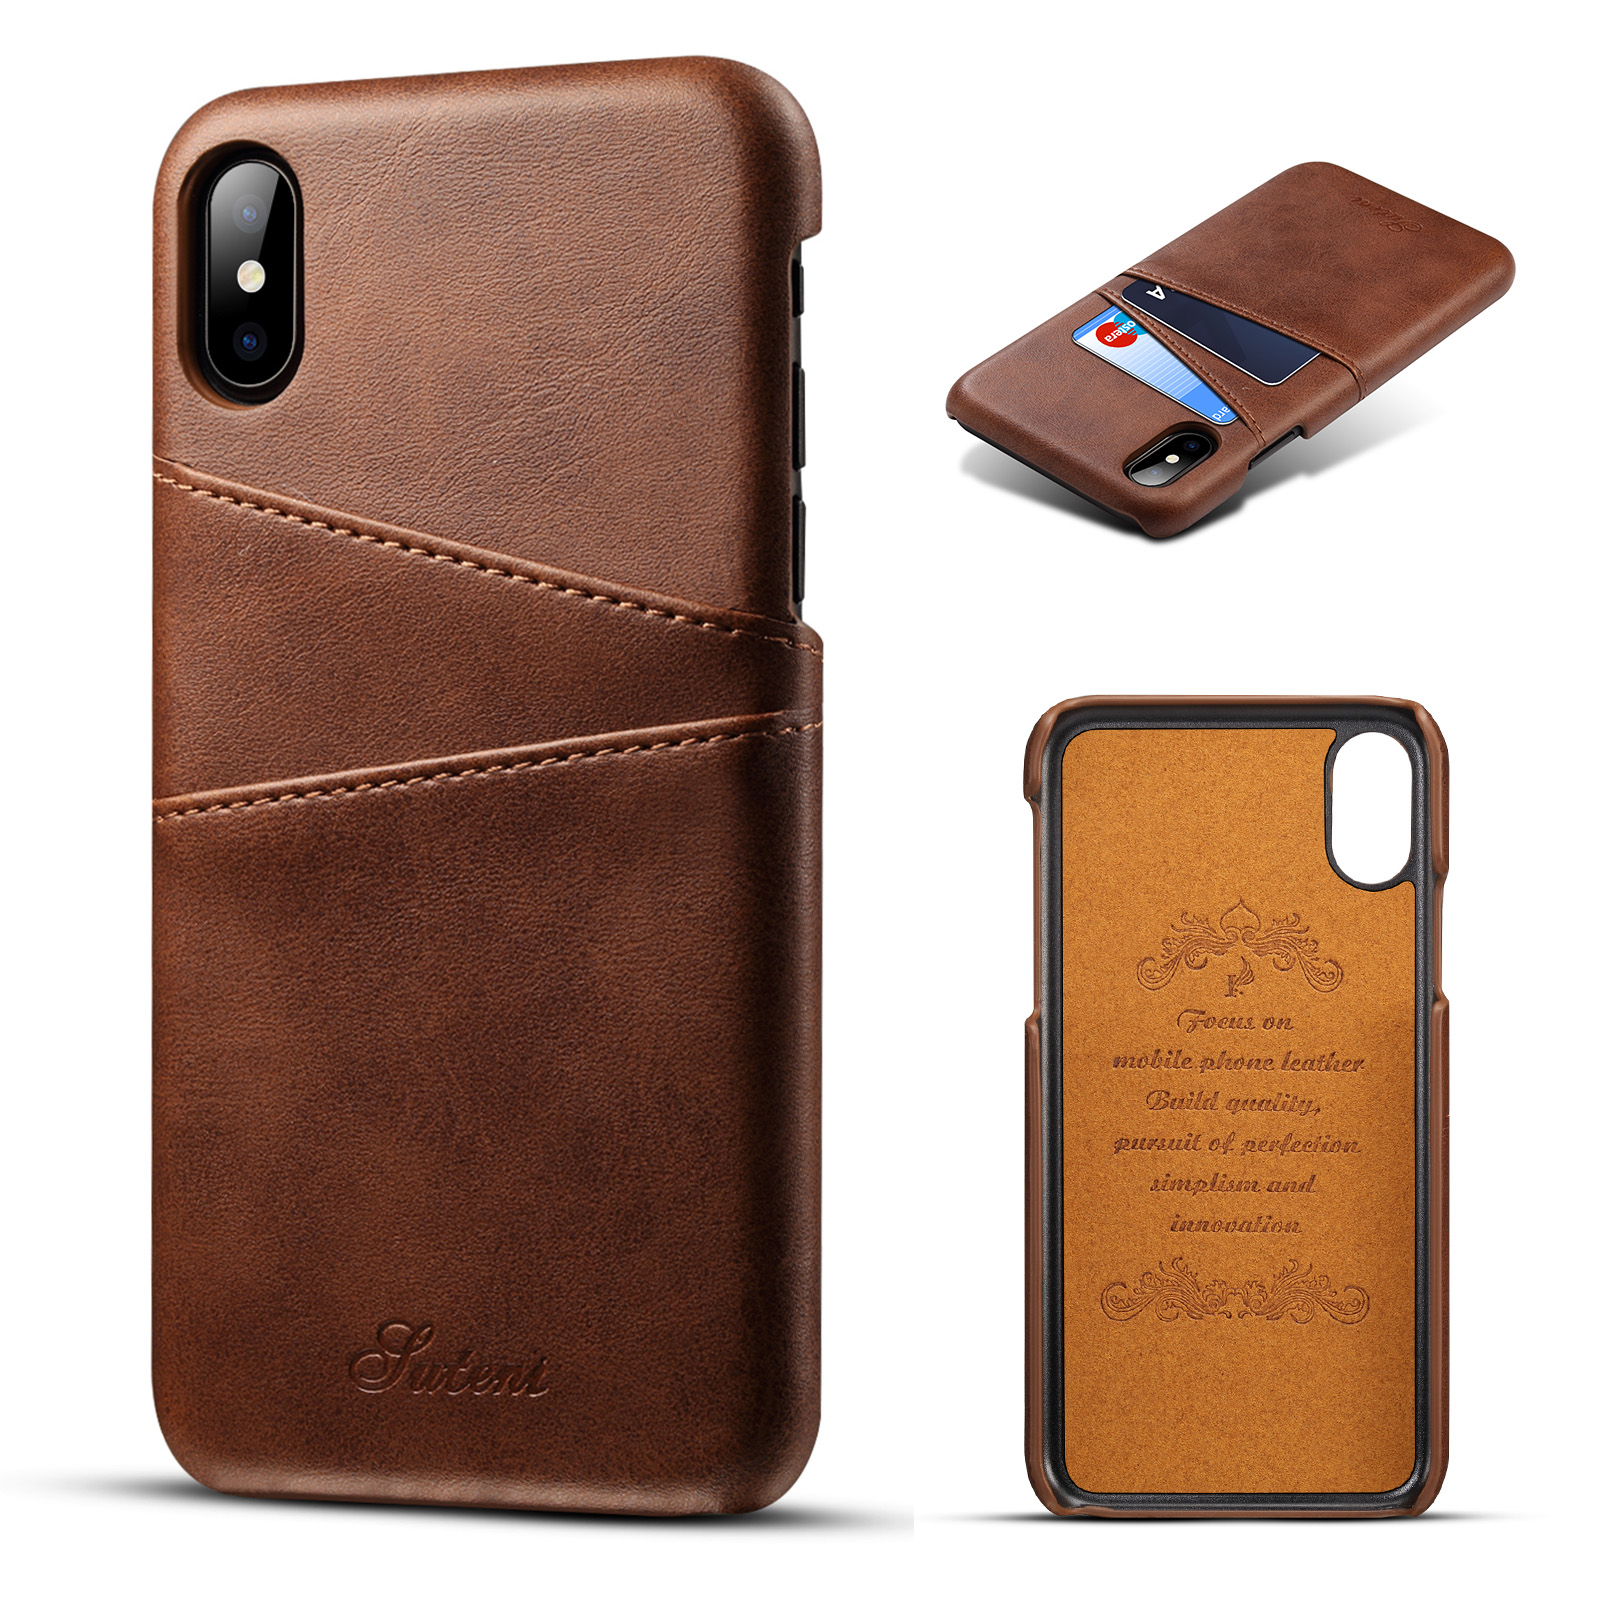 Allet Back Cover Case Michaelieclark Goospery Samsung Galaxy S9 Plus Fancy Diary Black Brown For Iphone X 7 8 Leather Wallet